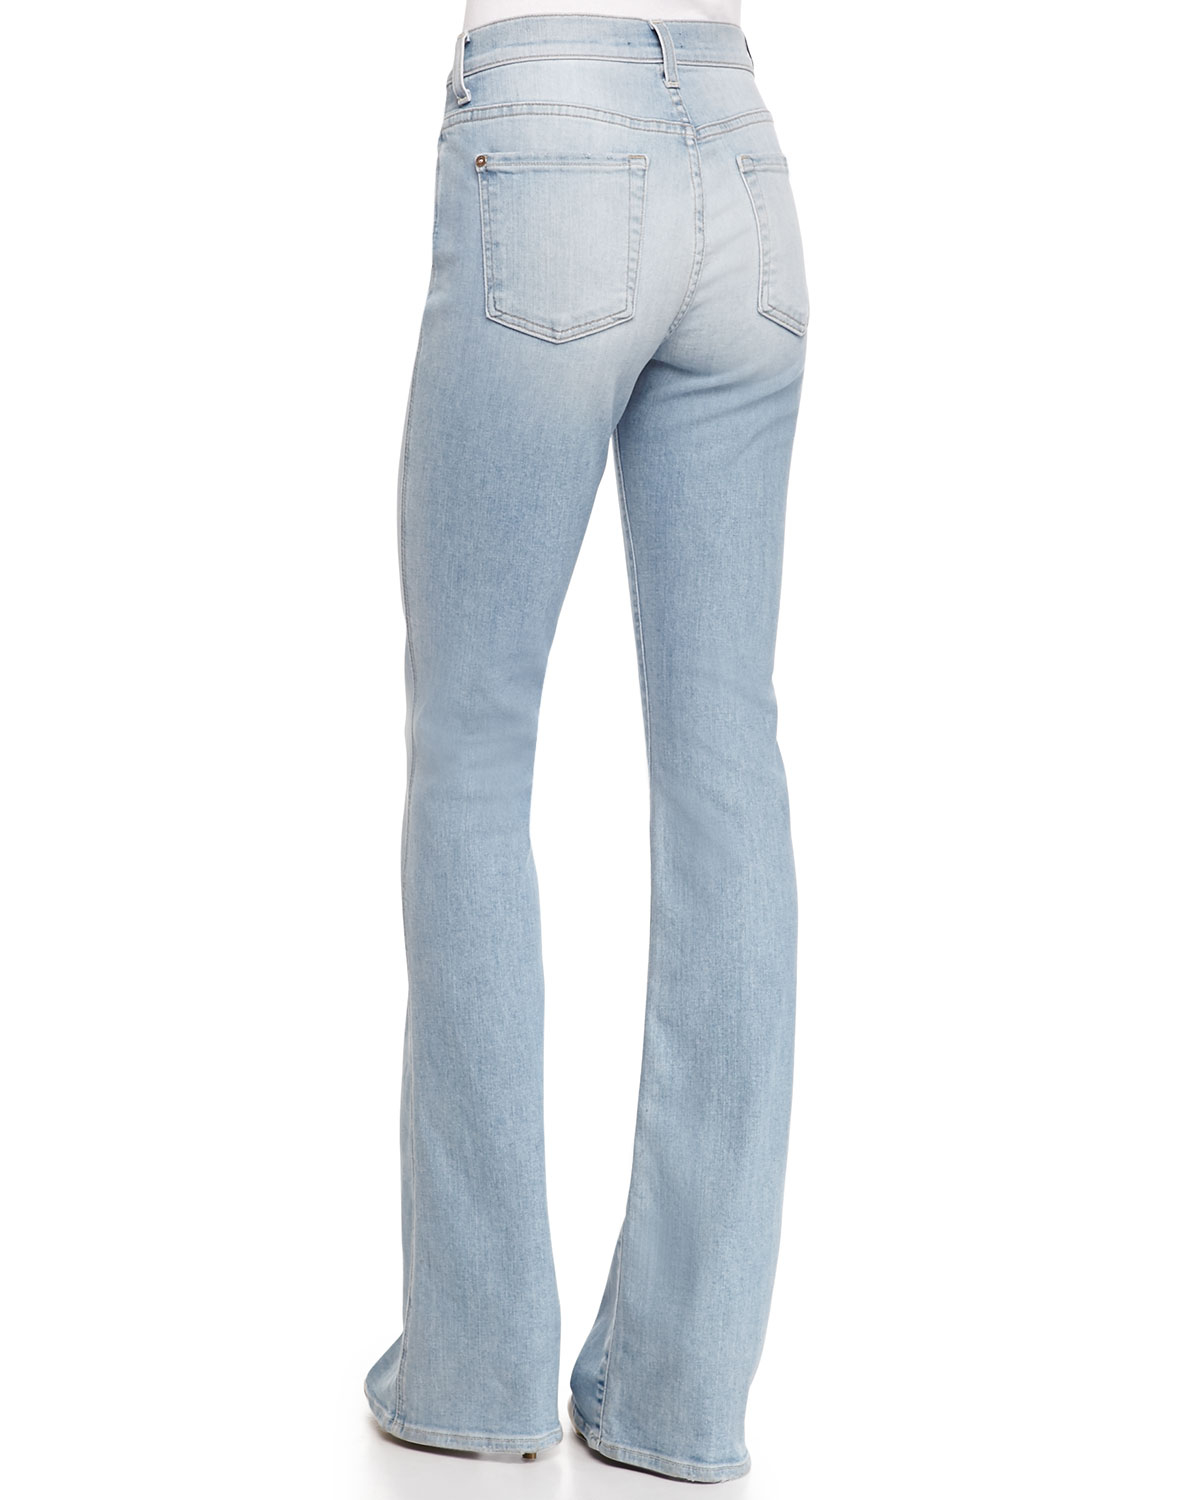 High Waisted Bootcut Jeans For Women - Jeans Am